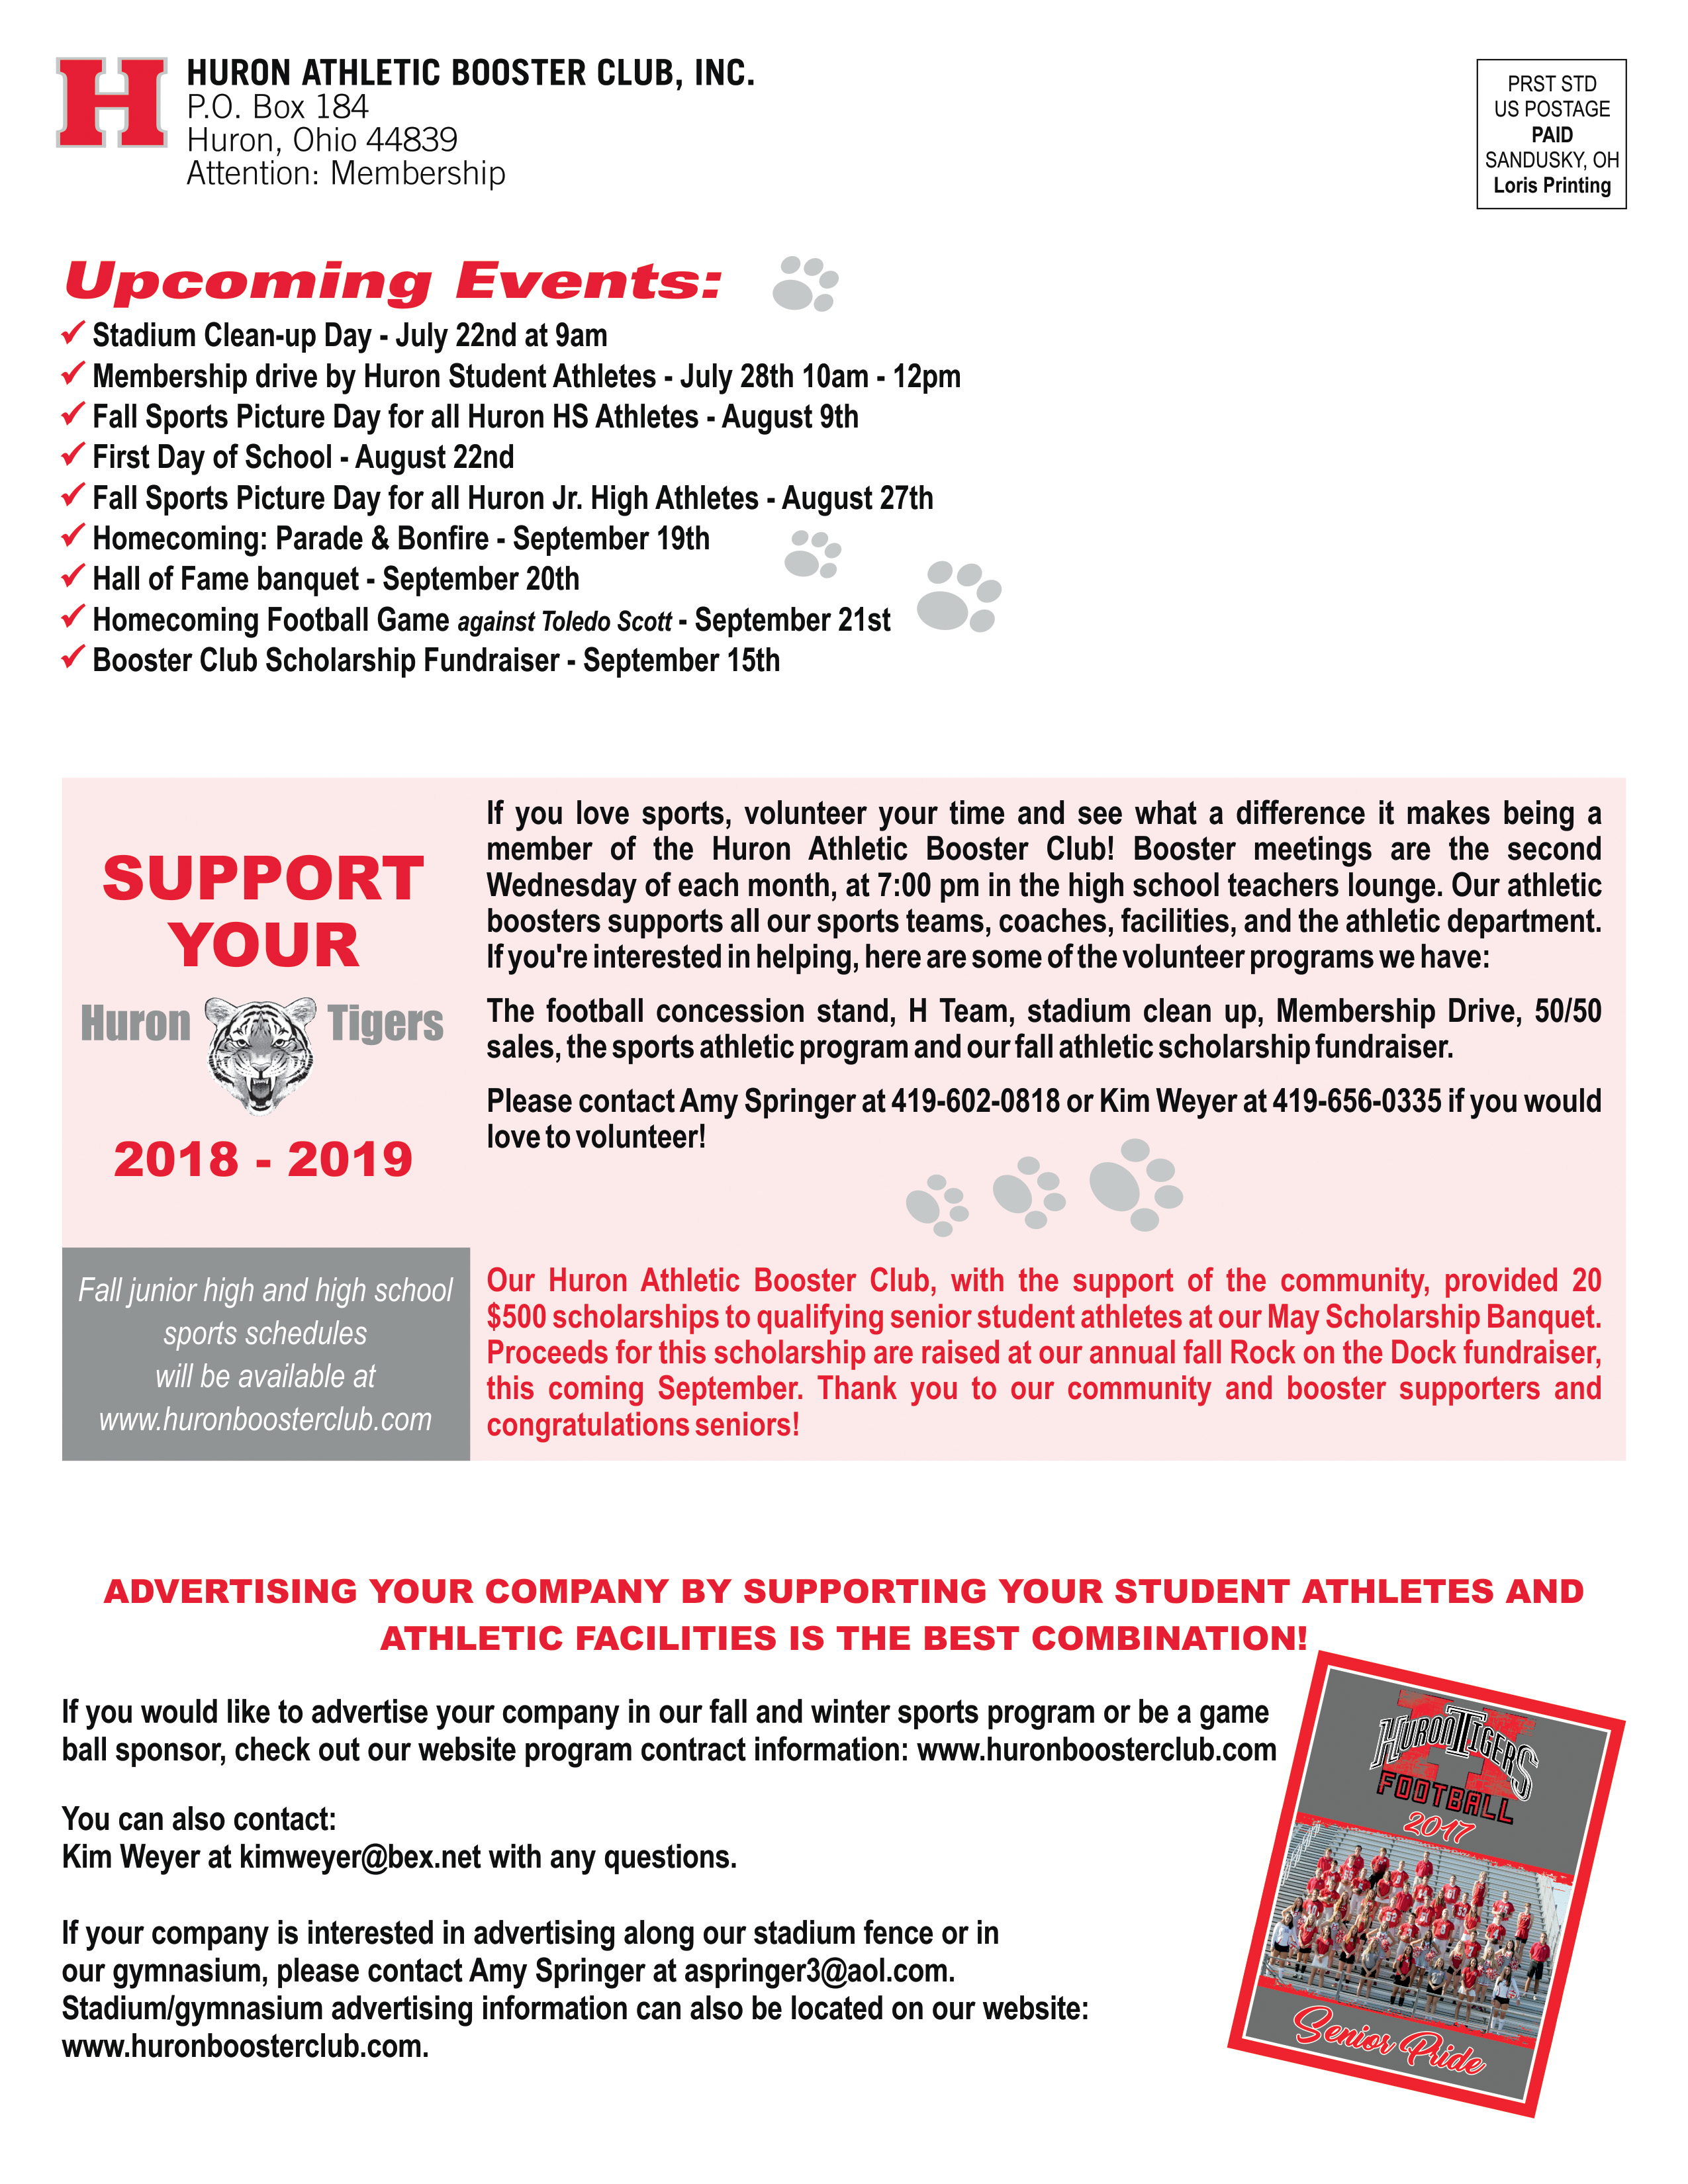 Huron Booster Drive and Upcoming Events